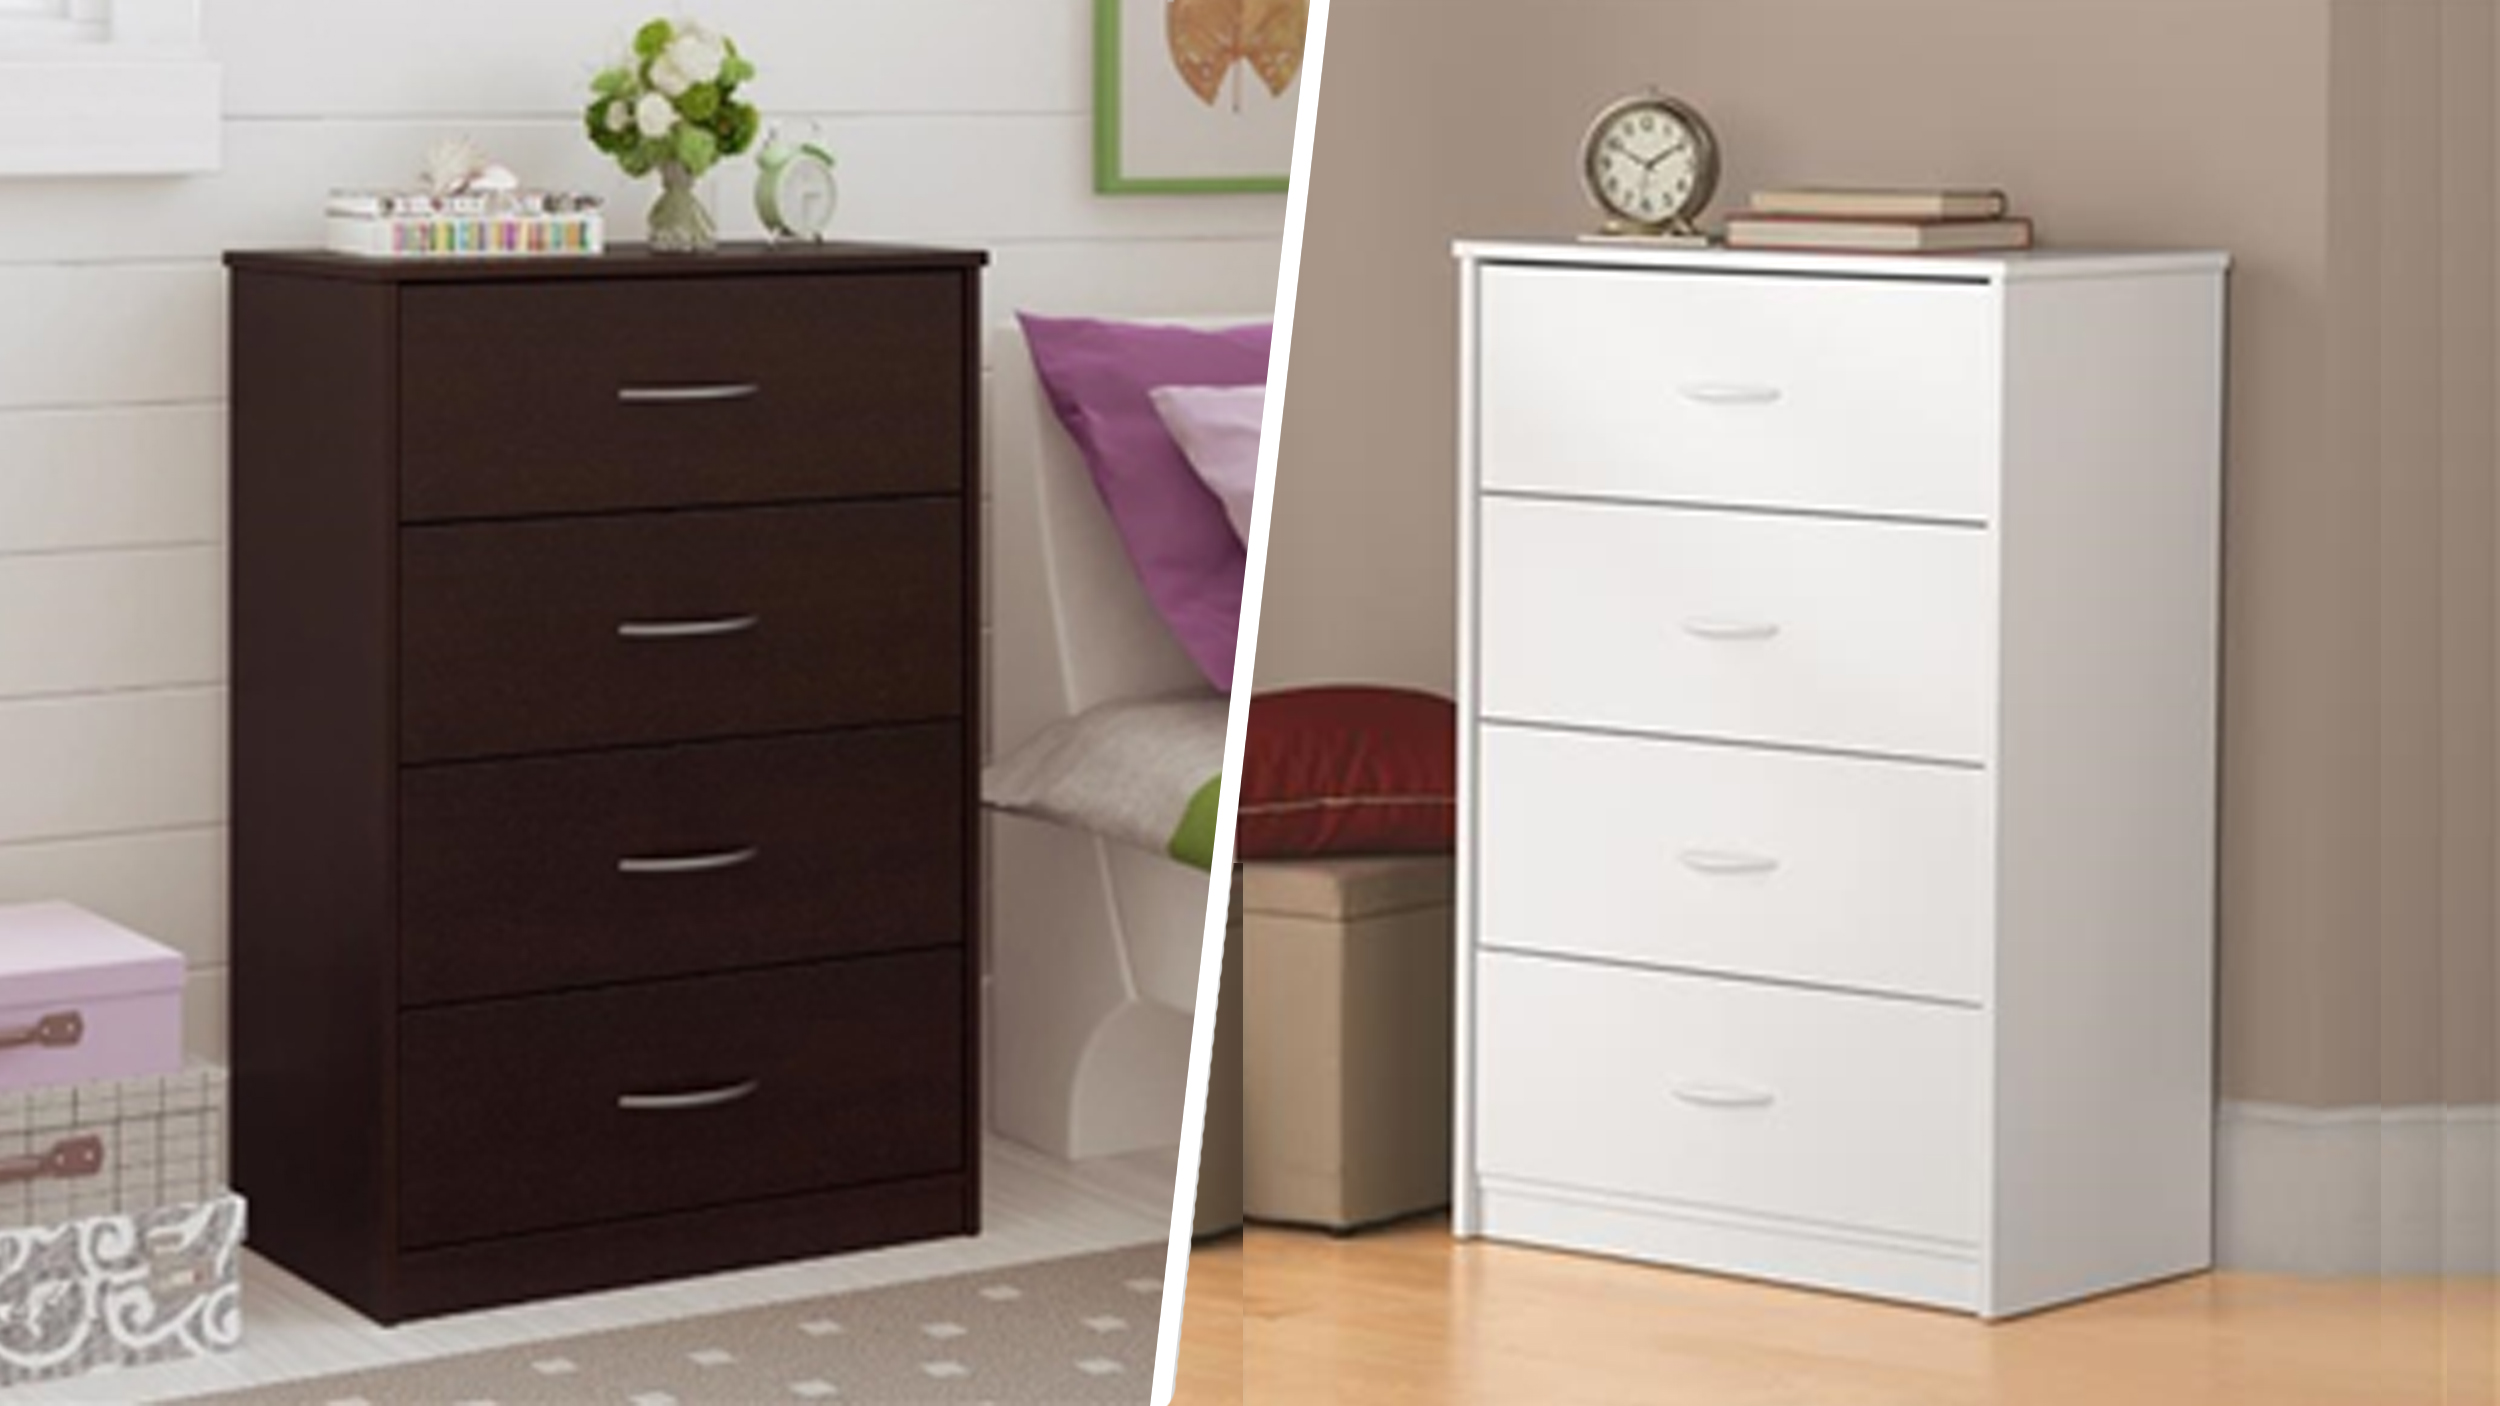 1 6 Million Dressers Sold Through Others Recalled Over Tipping Fears